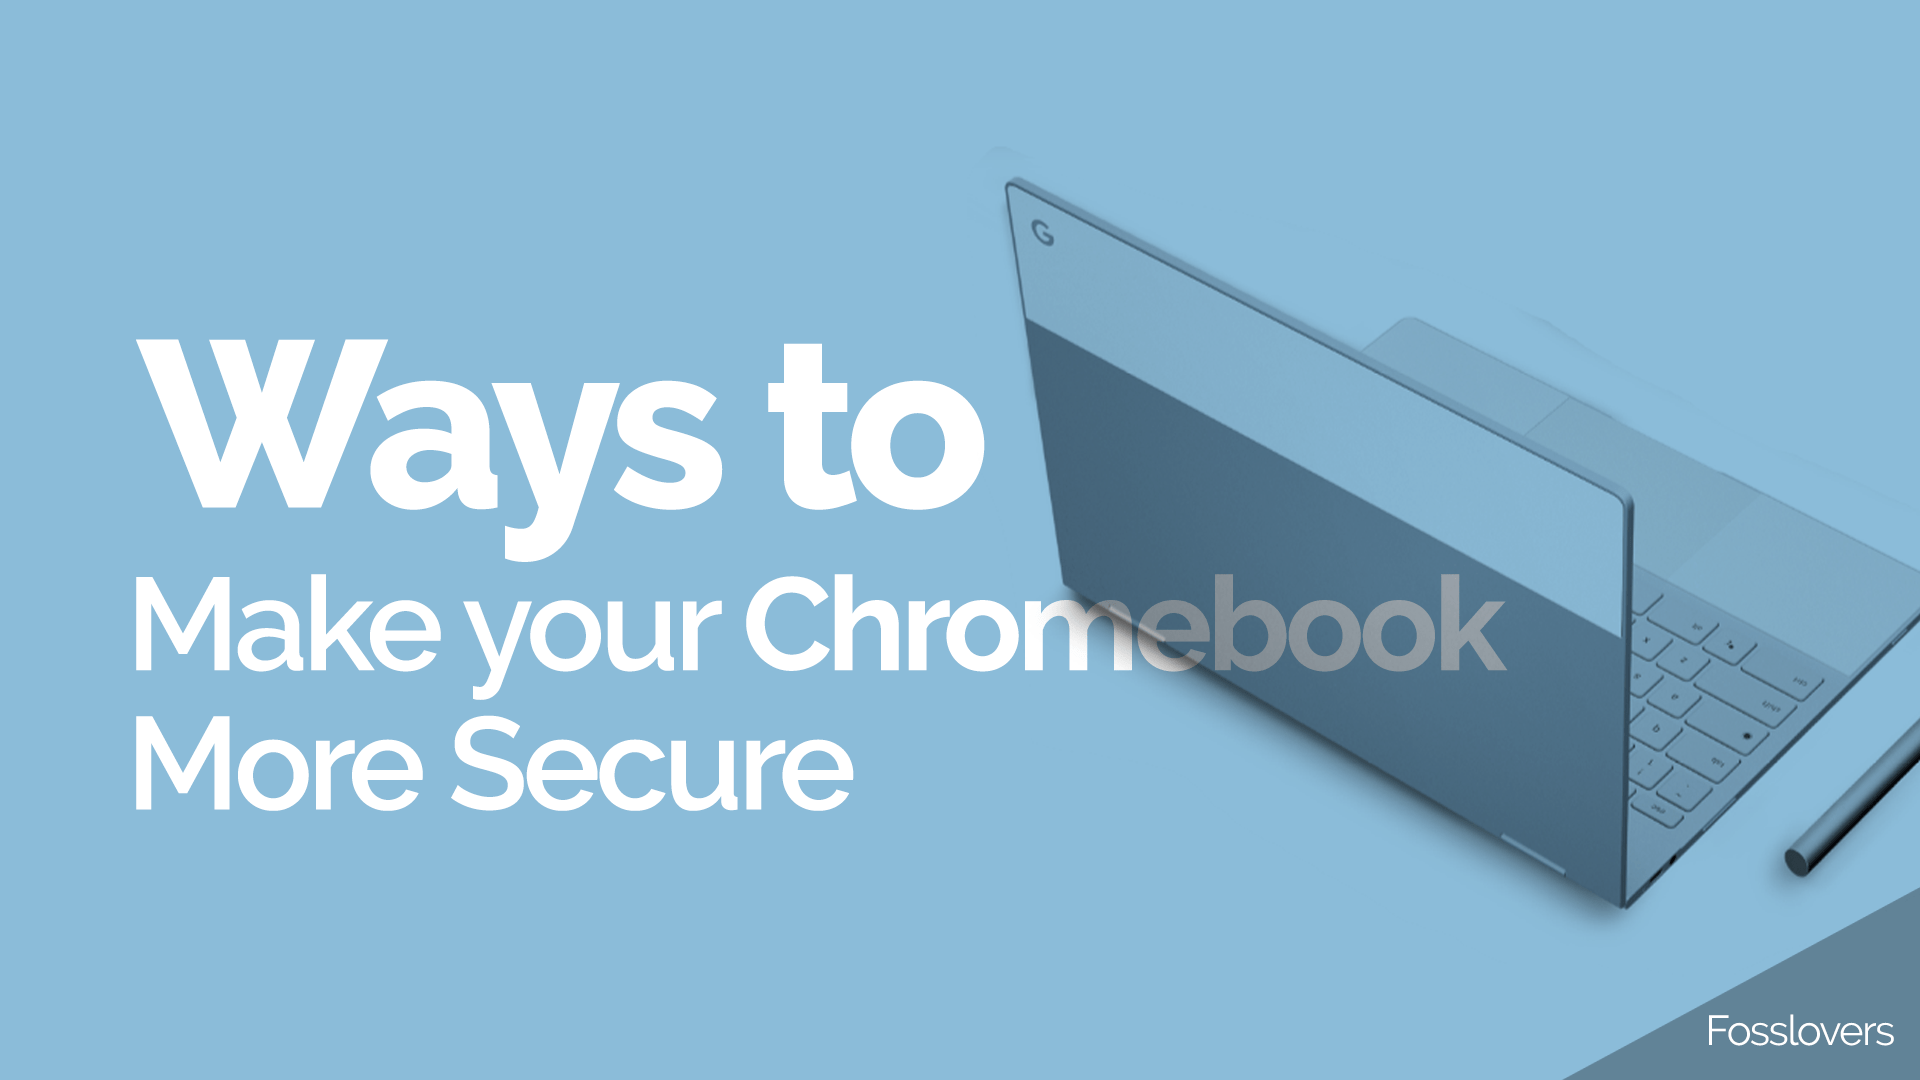 3 Ways to make your Chromebook More Secure